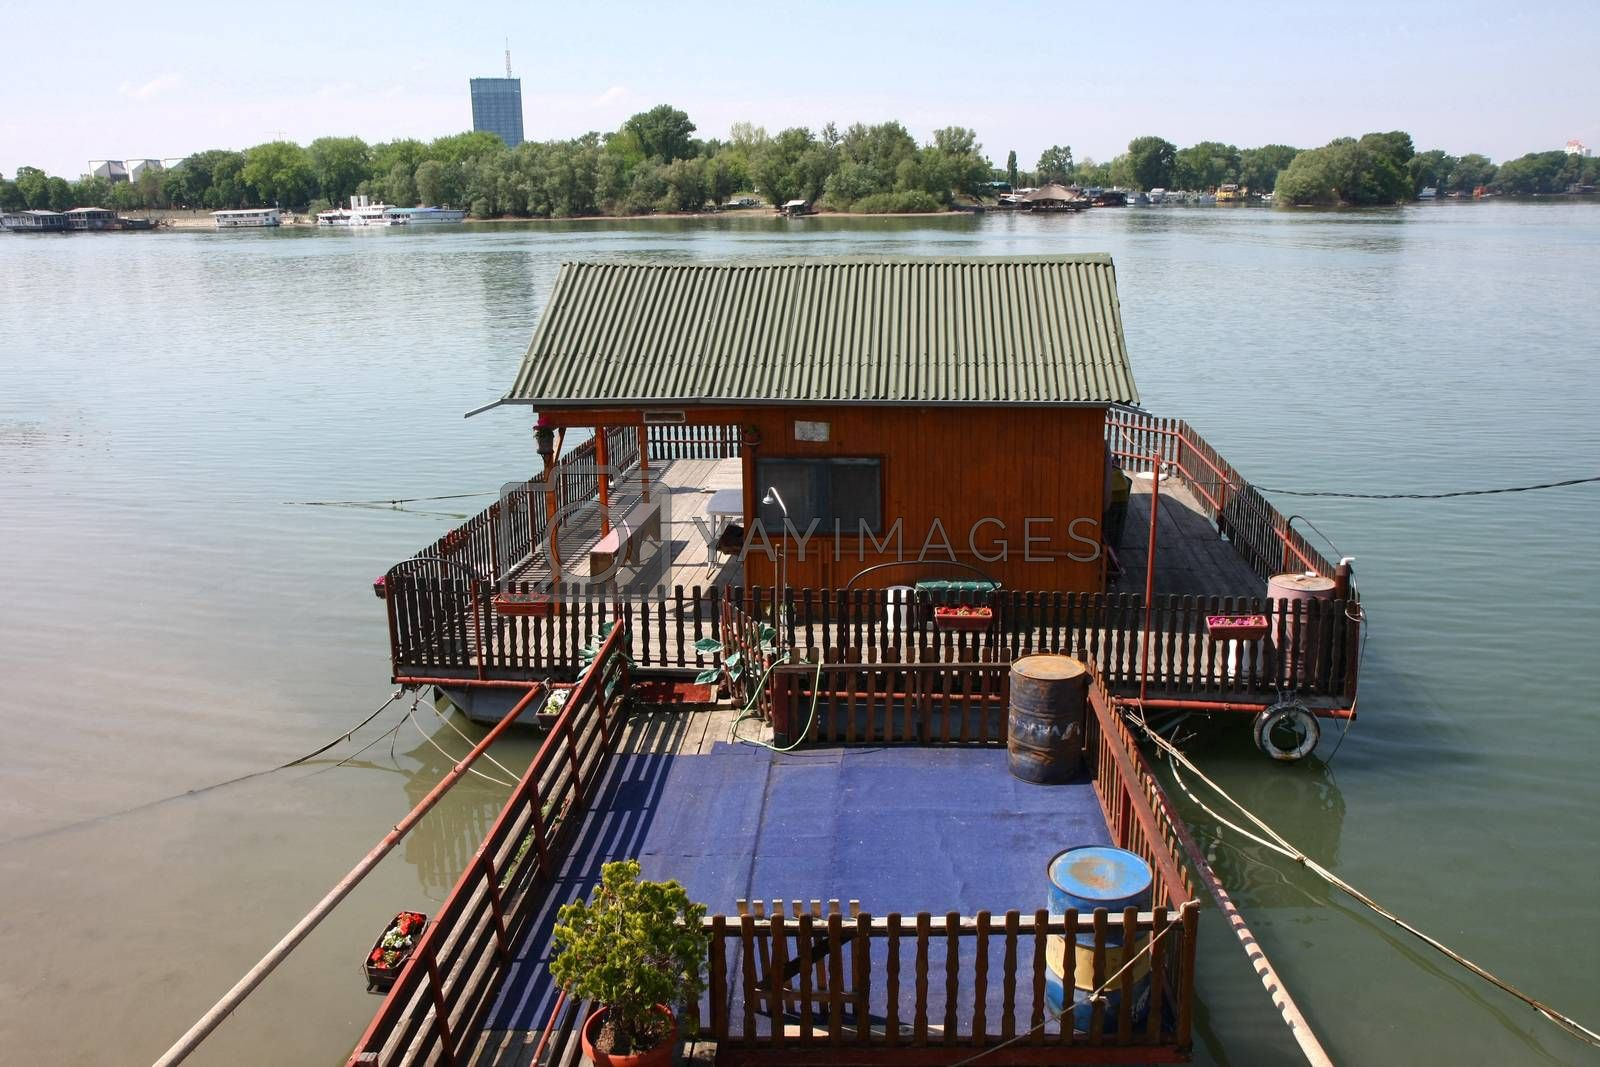 Cottage on the confluence of Sava river to Danube in Belgrade,Serbia